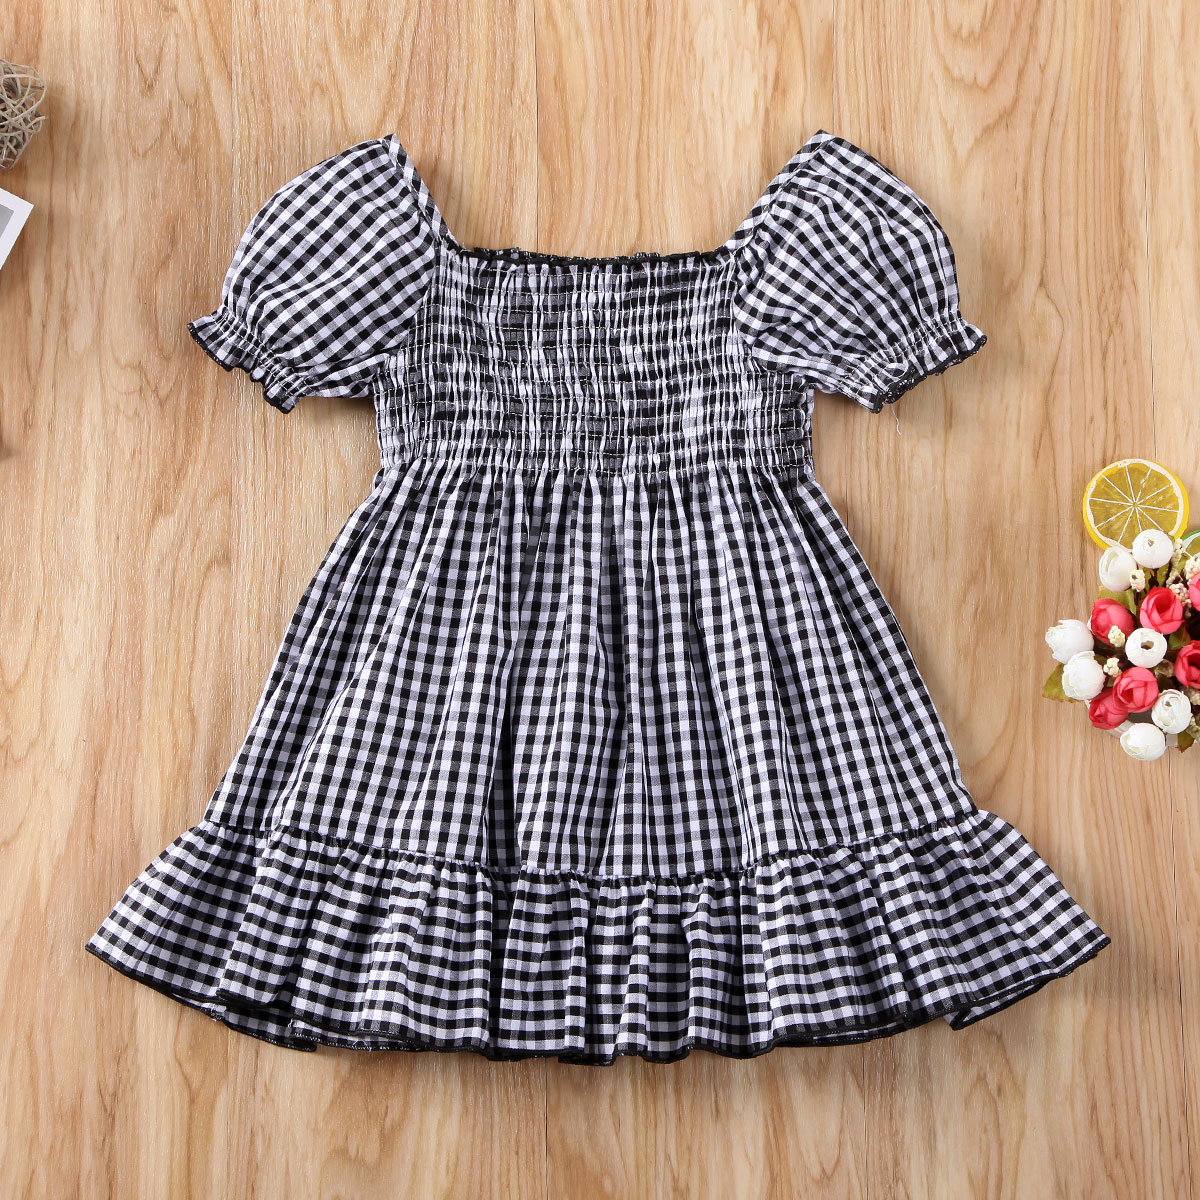 Pudcoco Toddler Baby Girl Clothes Plaids Off Shoudler Short Sleeve Ruffle Dress Princess Pageant Party Tutu Dress Clothes